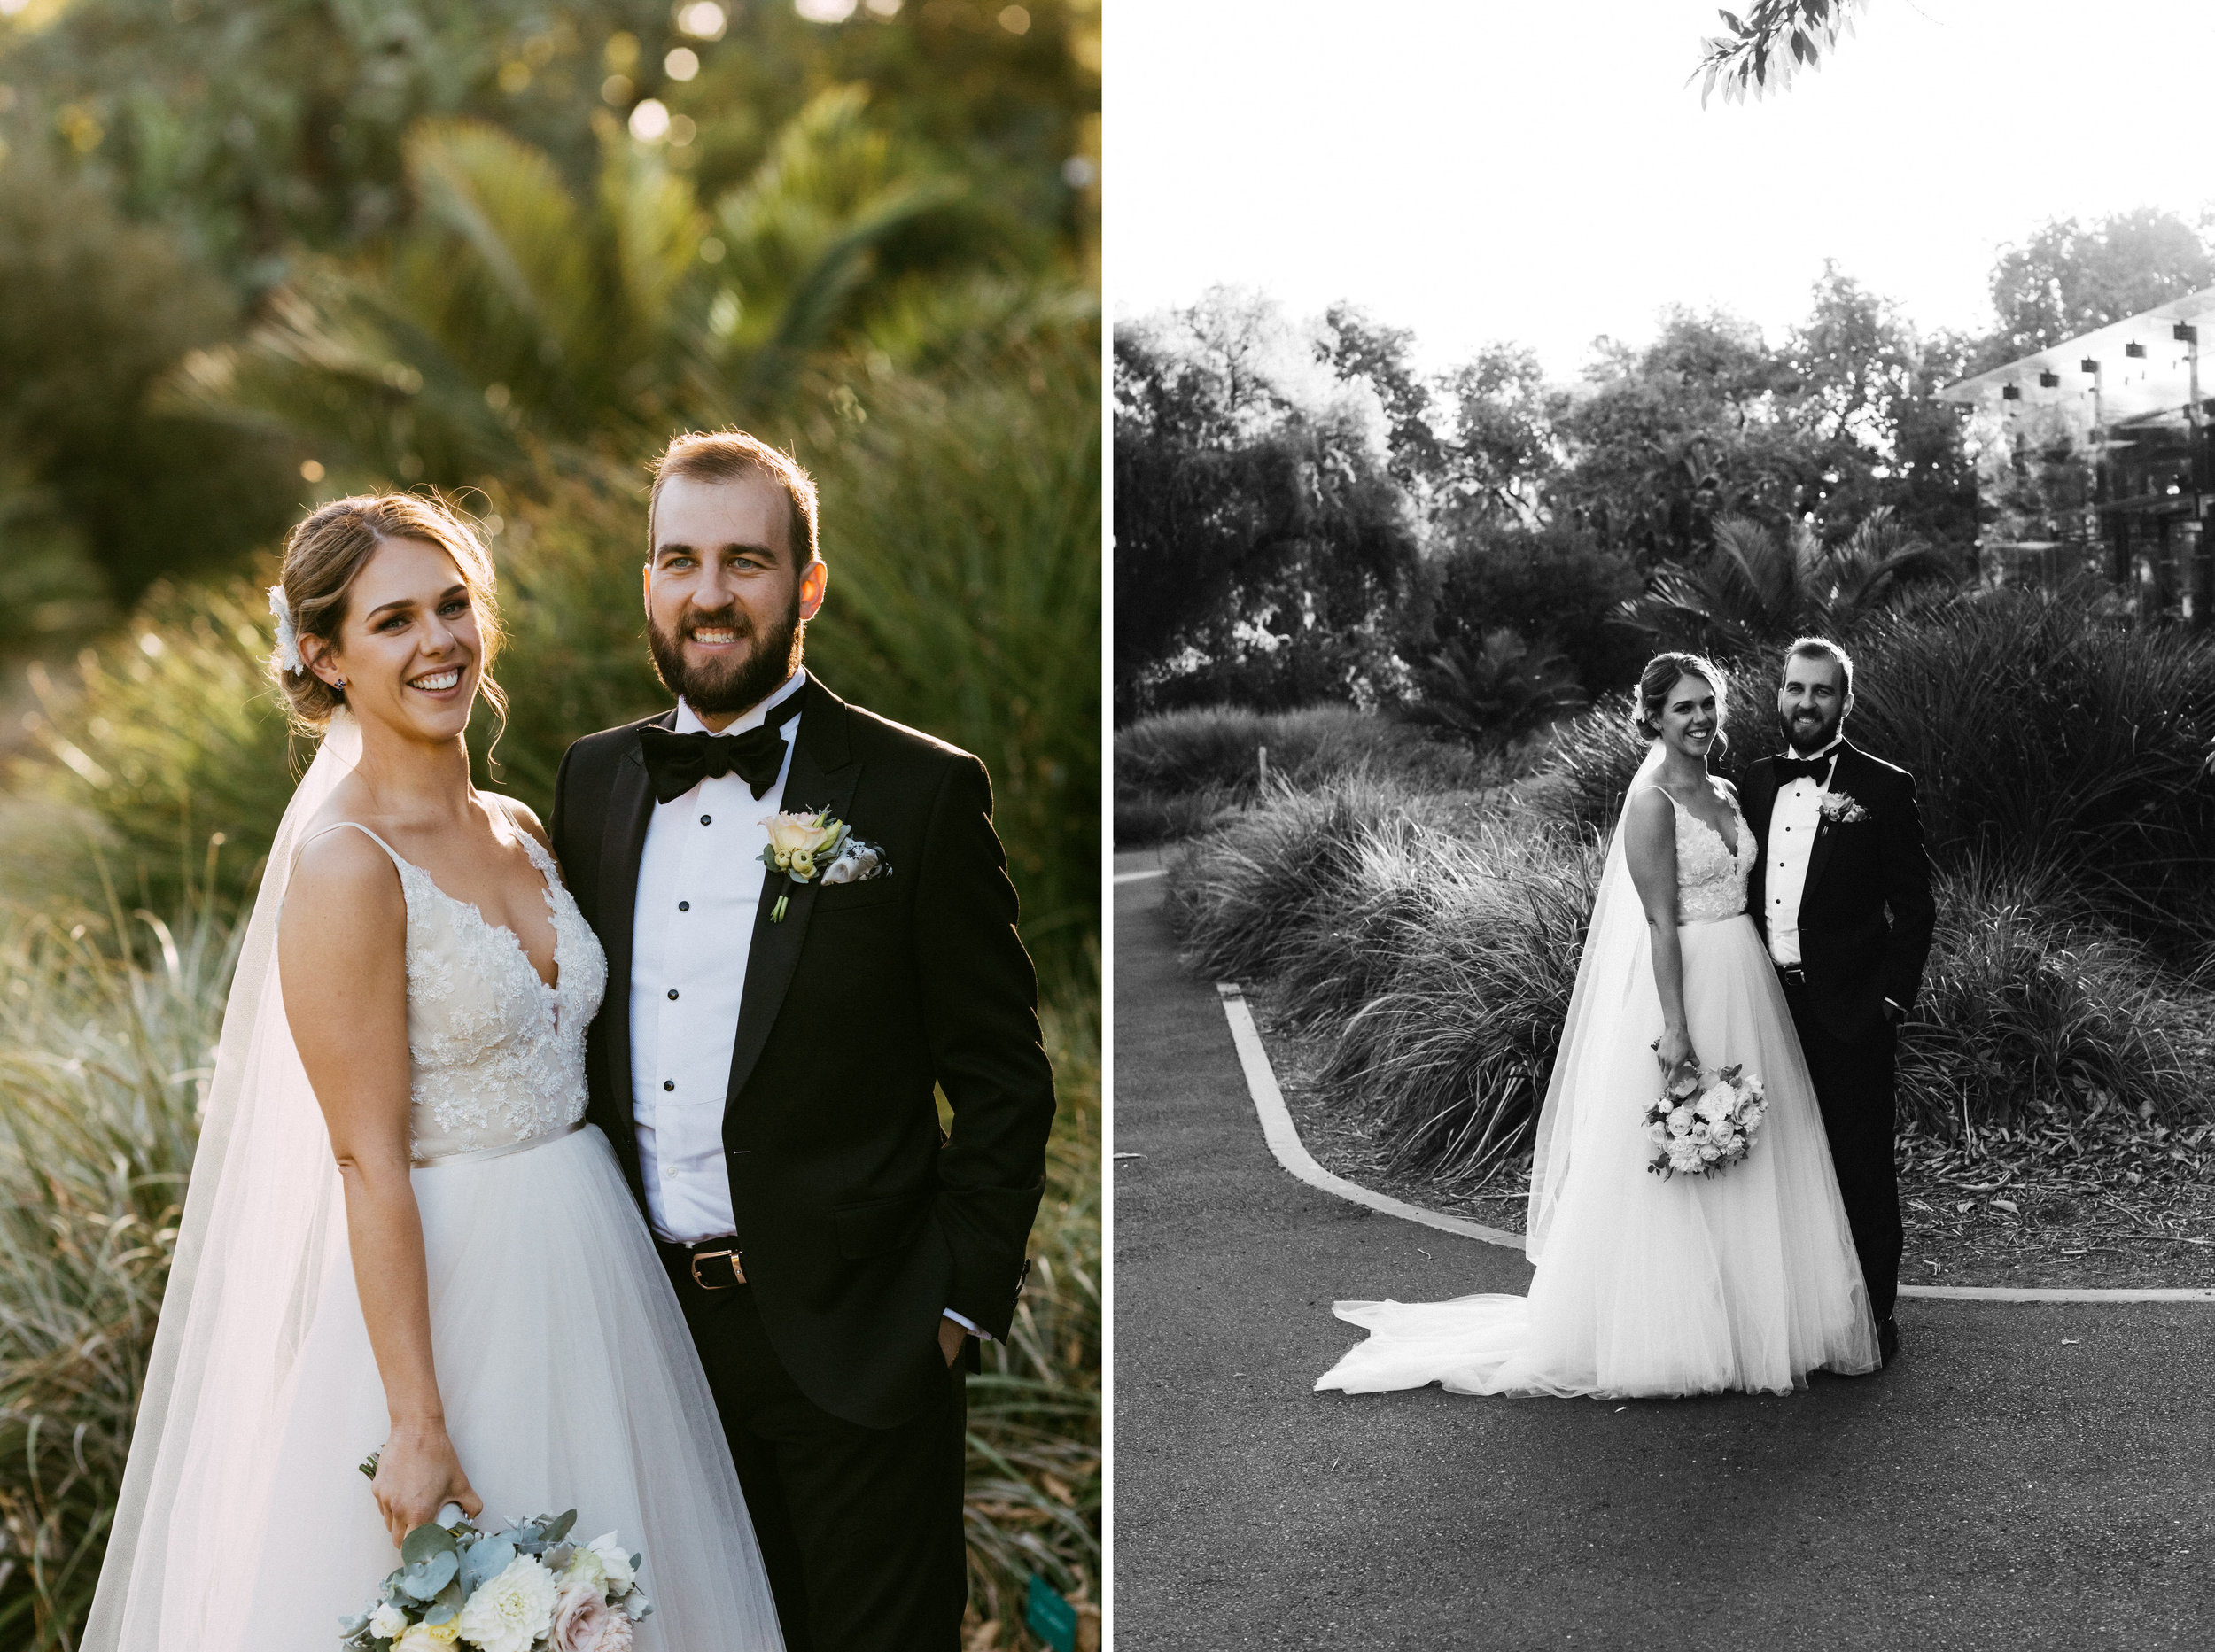 Adelaide Wedding 2019 104.jpg